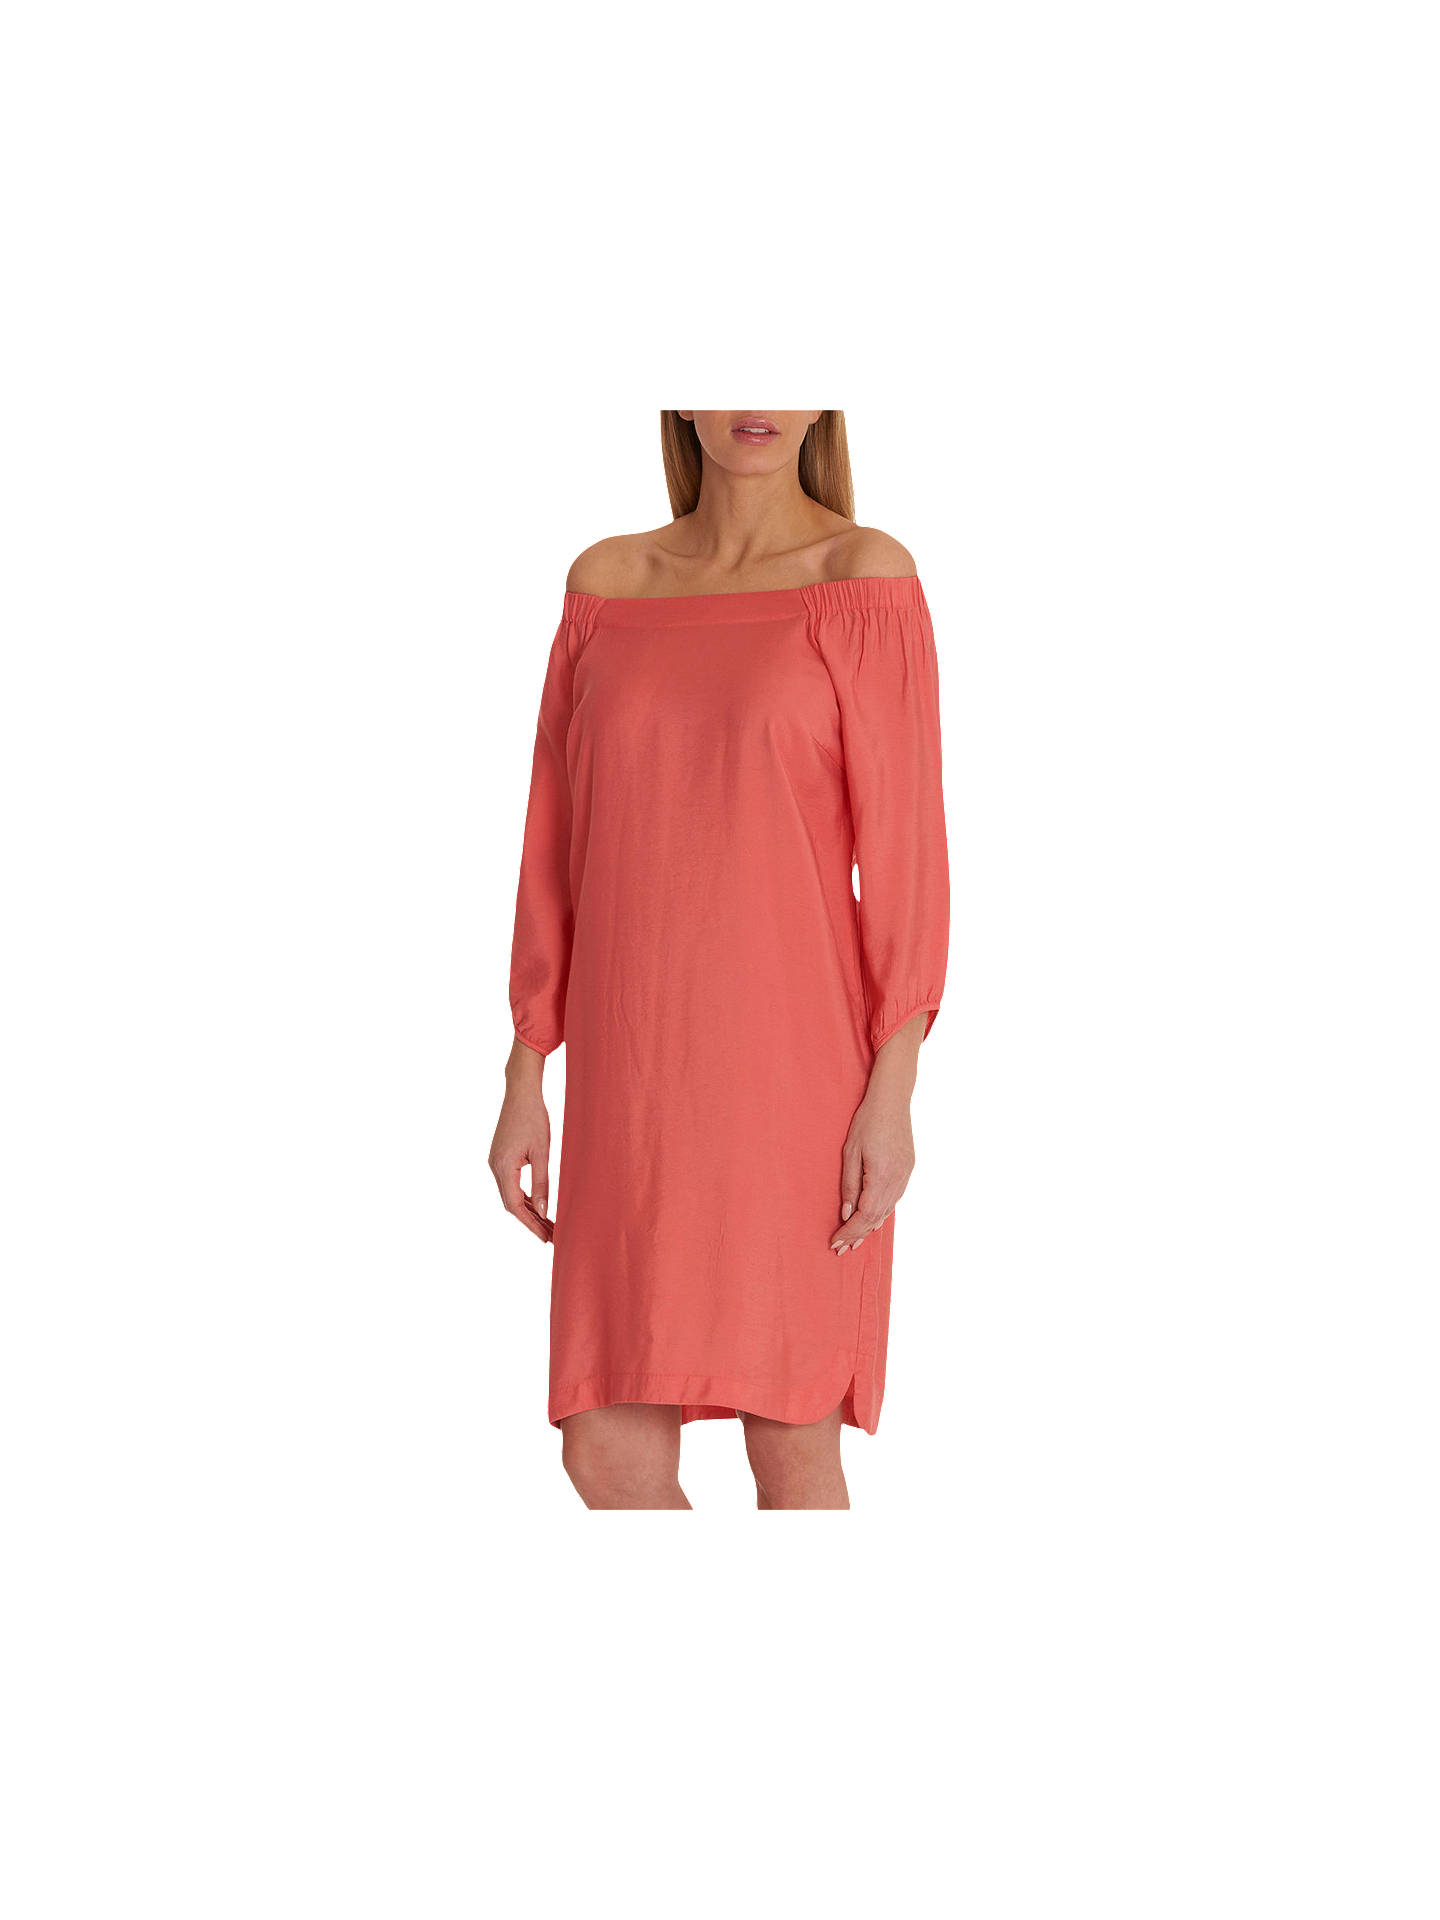 BuyBetty Barclay Shift Dress, Peach Coral, 12 Online at johnlewis.com